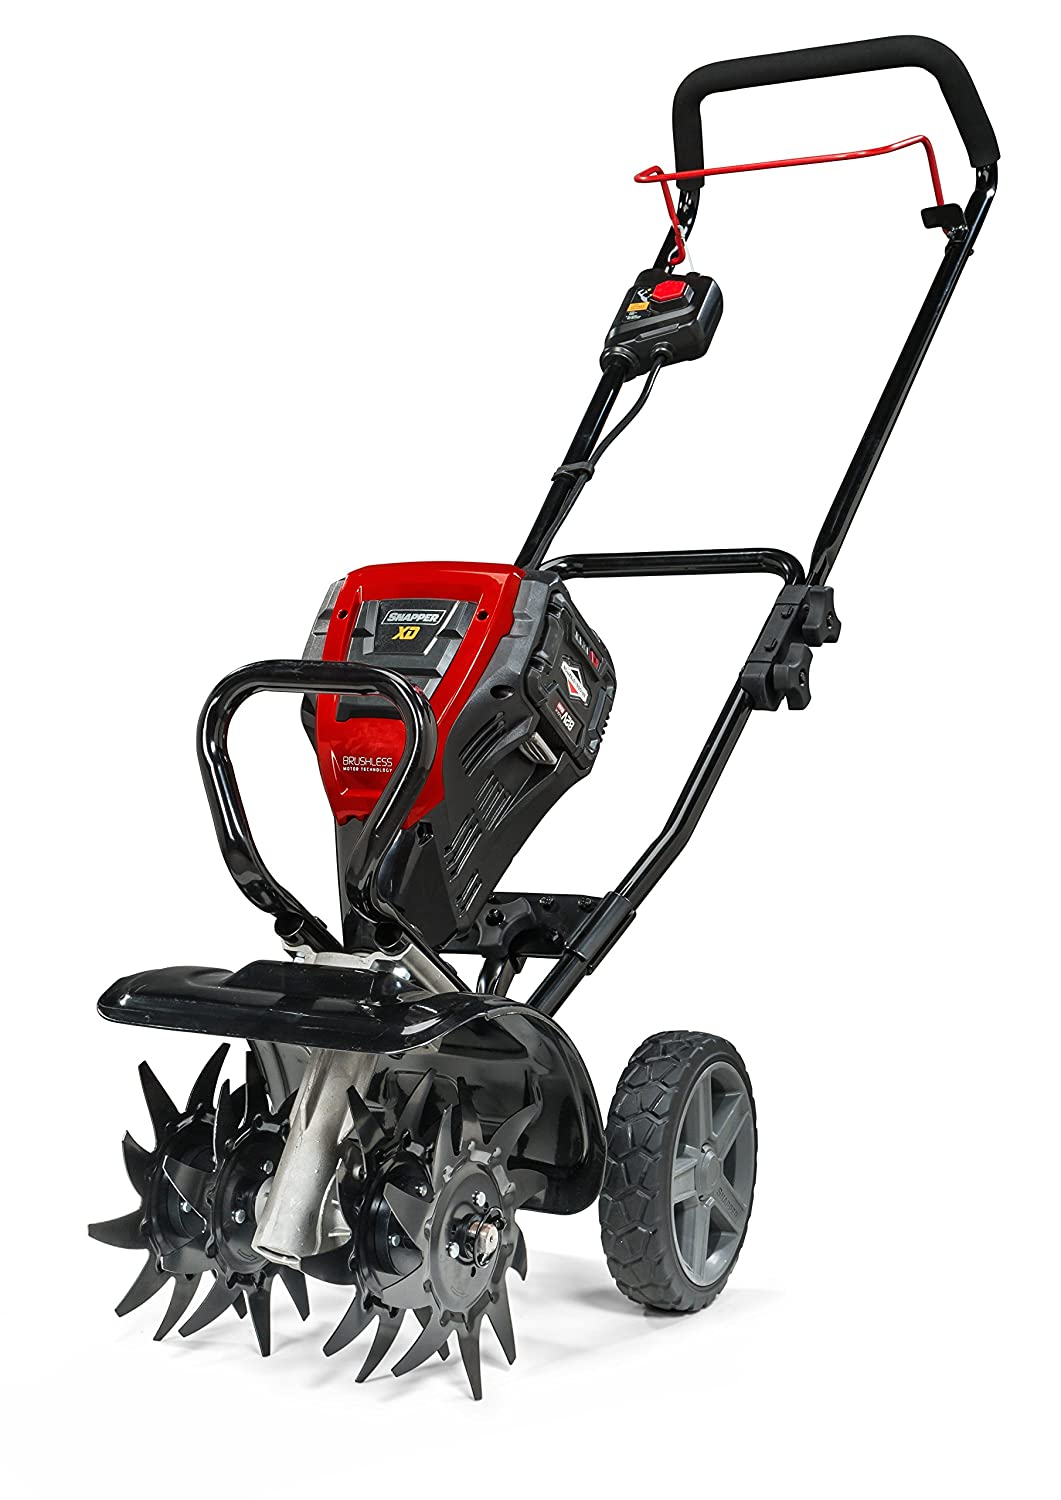 Snapper XD 82V MAX Electric Cordless Cultivator, Battery and Charger sold separately, 1696869, SXDC82